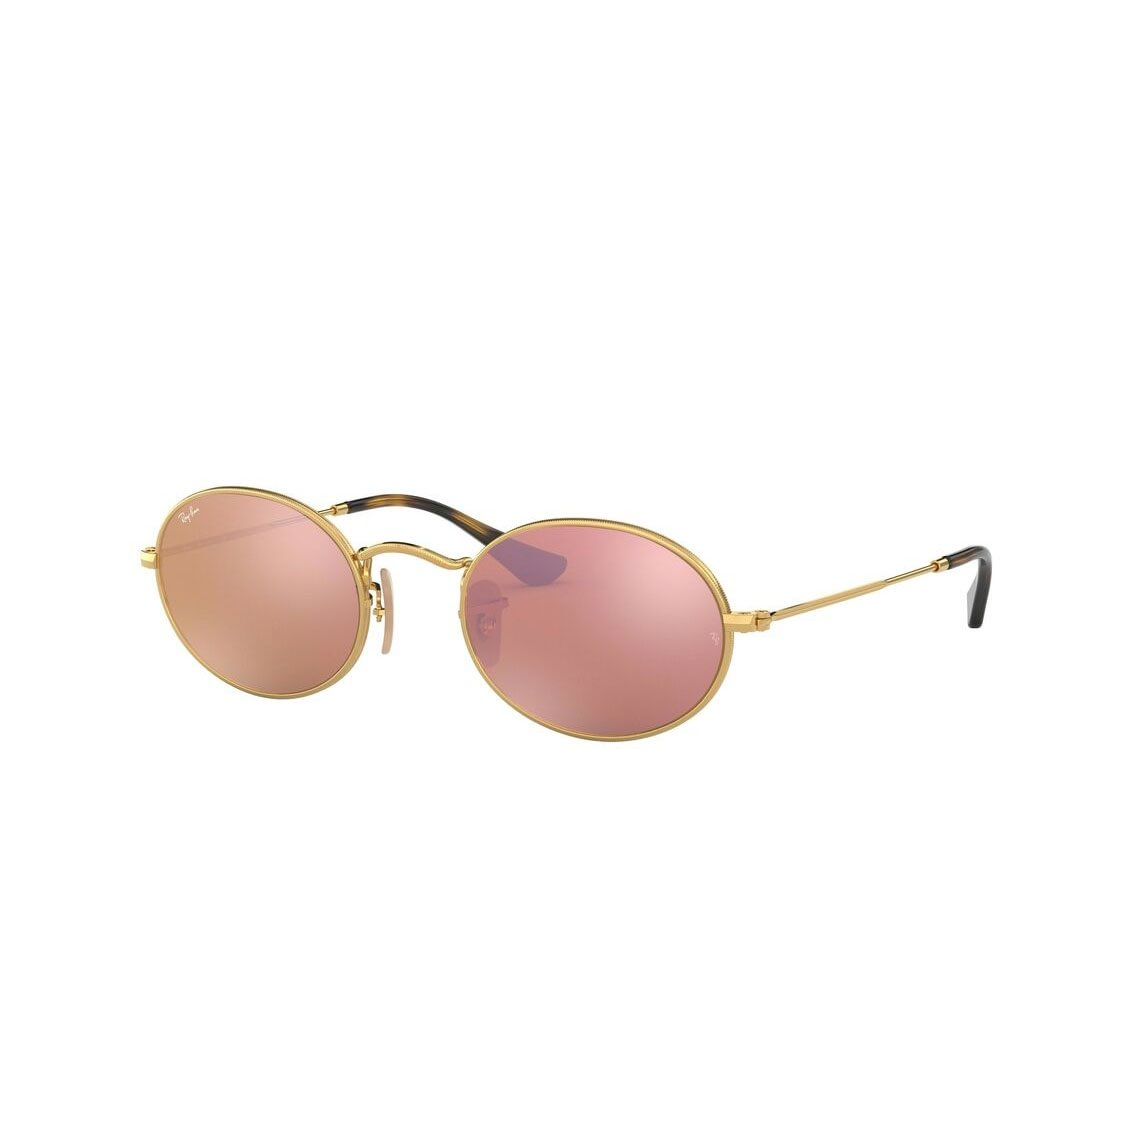 Ray-Ban Oval flat lenses RB3547N 001/Z2 51